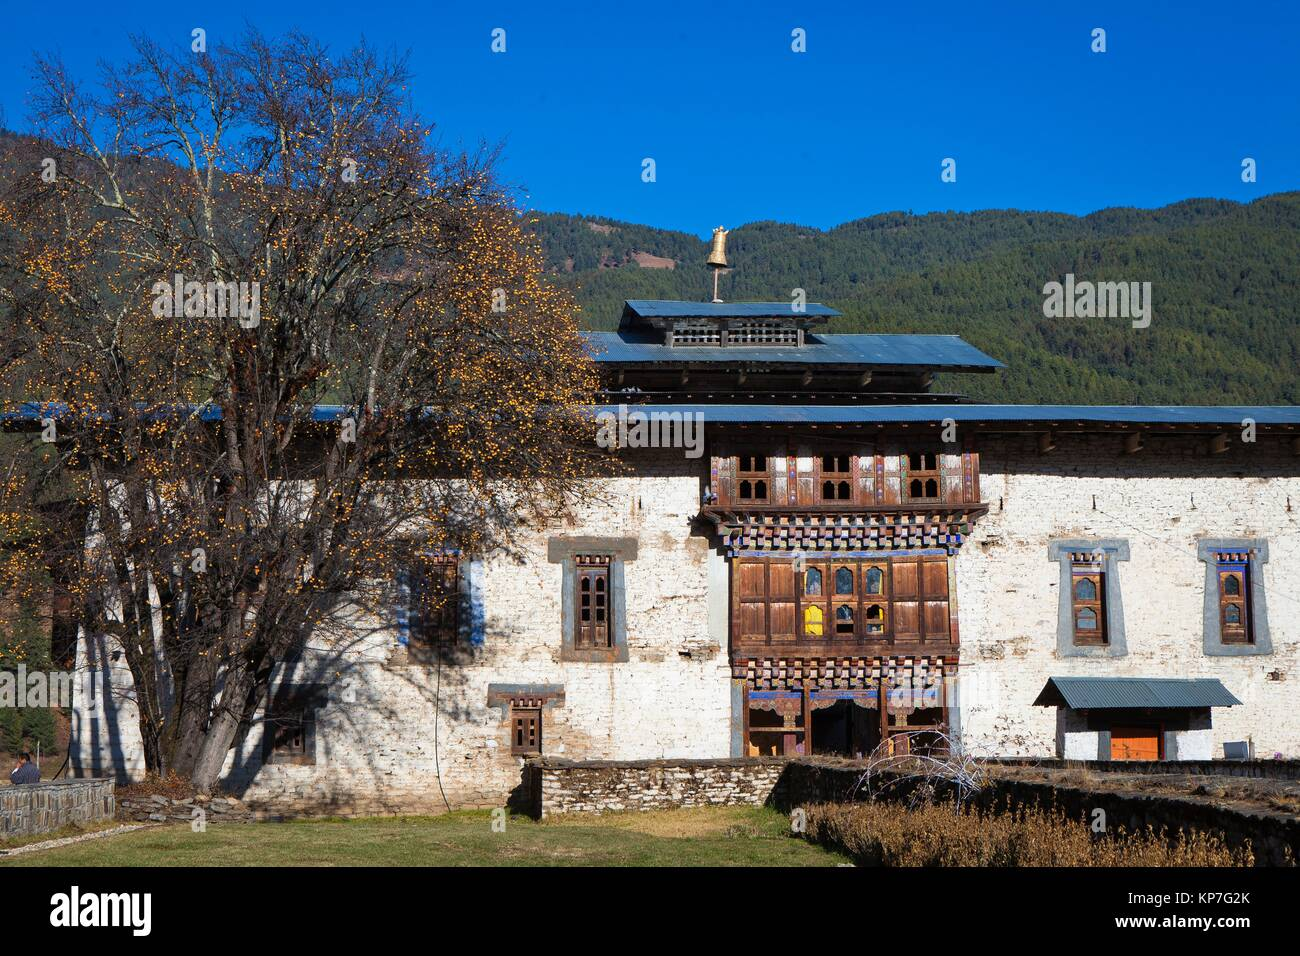 Temple of Wangdichholing Palace built in 1857 as the Kingdom´s first palace, Bumthang, Bhutan, Asia - Stock Image